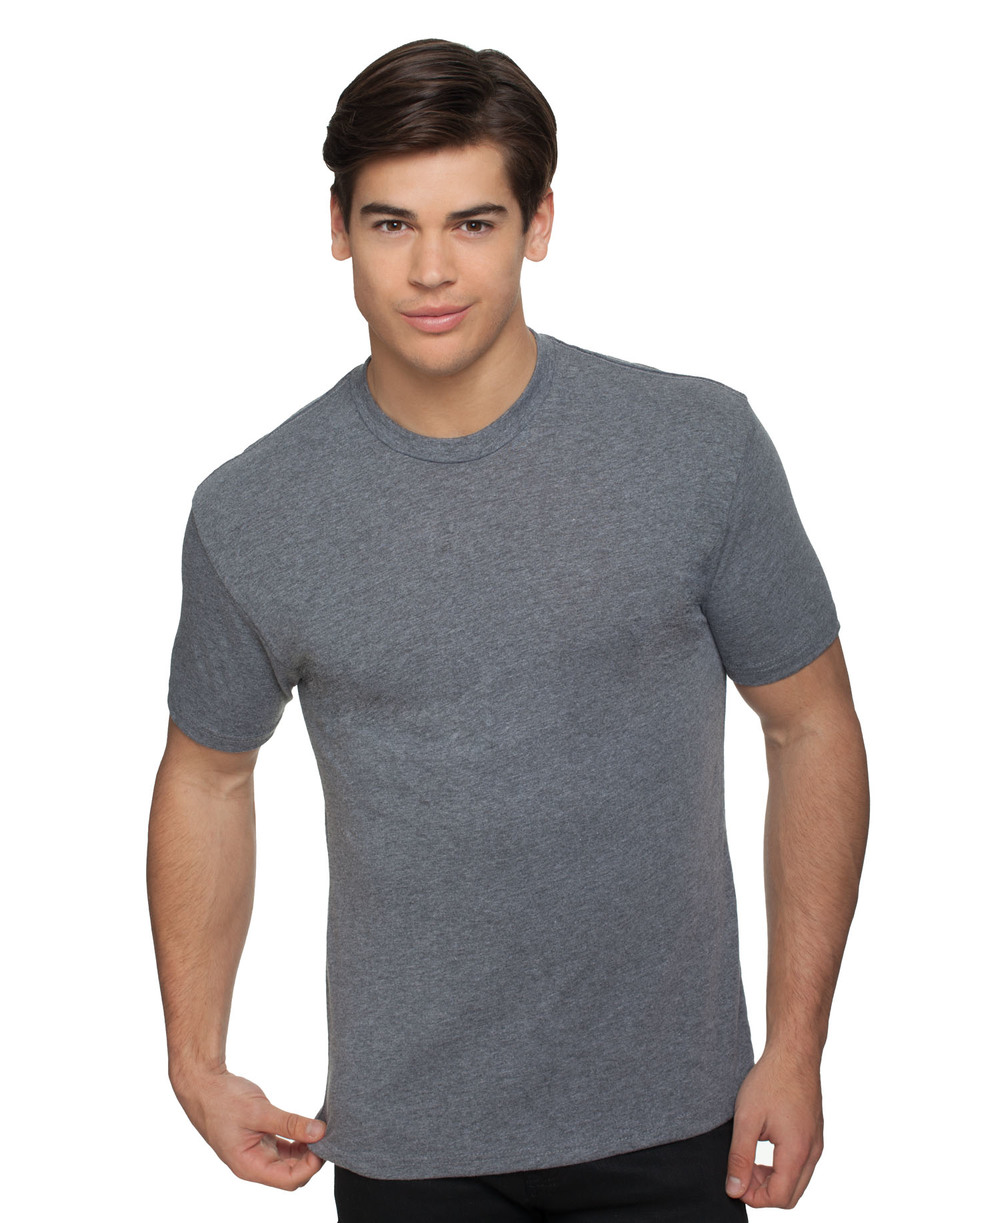 NL6010 / NEXT LEVEL TRI-BLEND TEE   4.3 oz. 50% Poly / 25% Cotton / 25% Rayon Set in collar 1x1 baby rib Satin label       COLOR OPTIONS